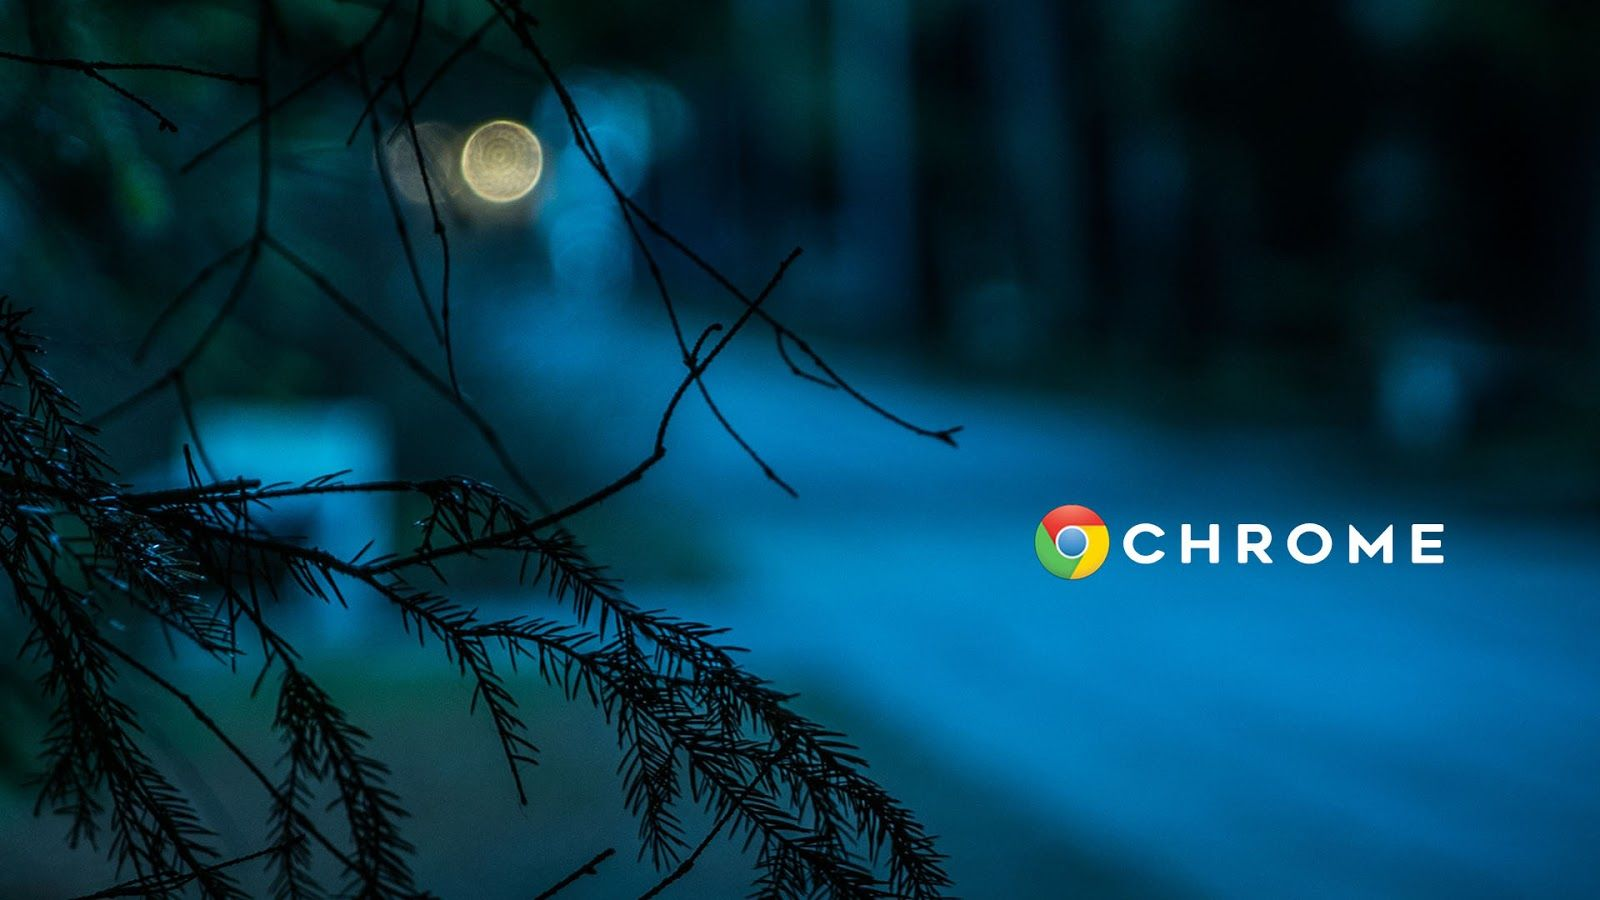 55+ [Aesthetic] Chromebook Wallpapers HD Desktop Wallpapers